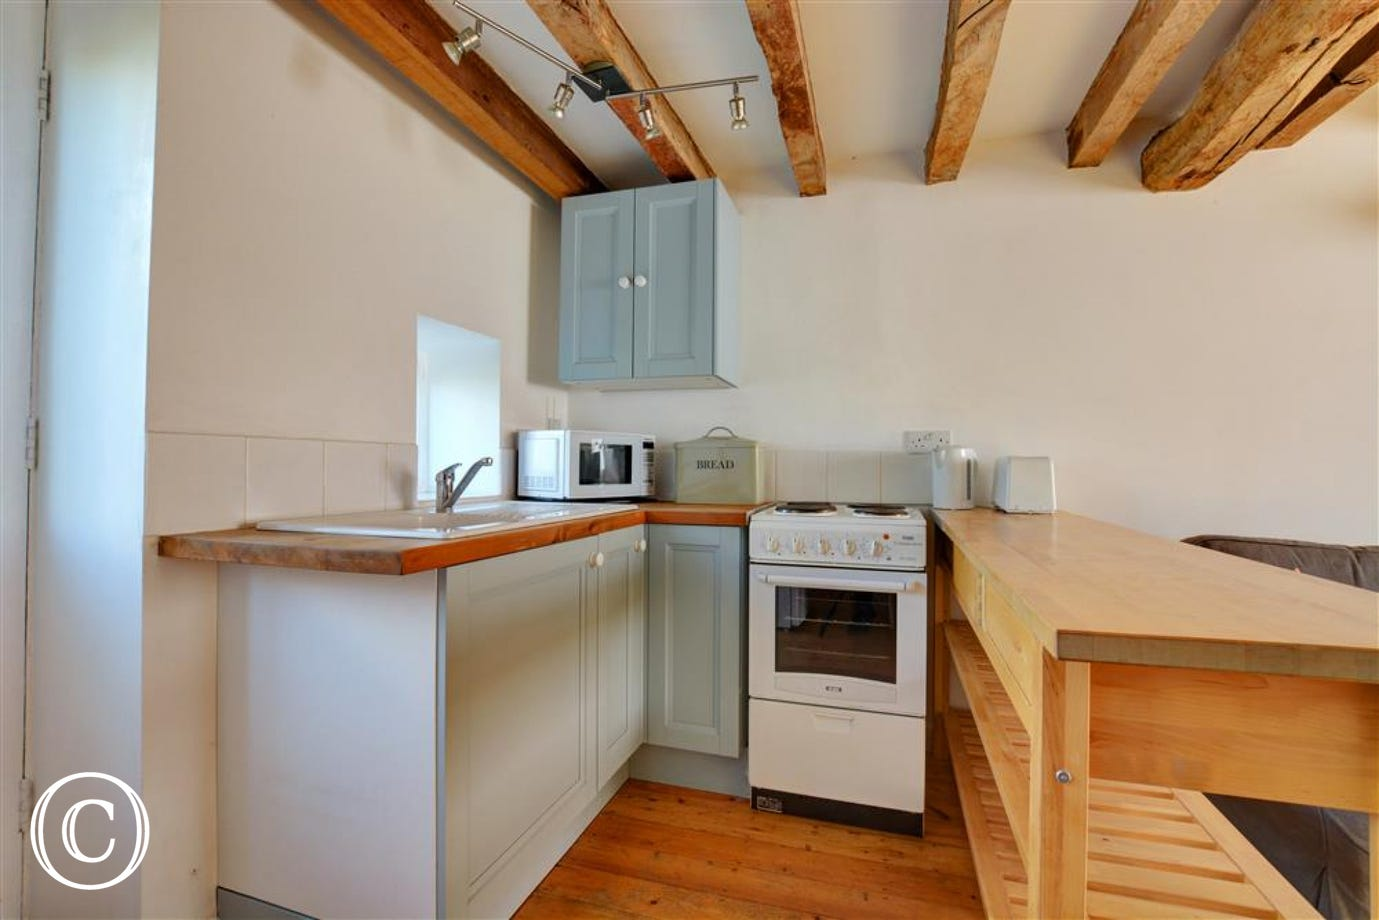 Compact kitchen area within the open plan living space